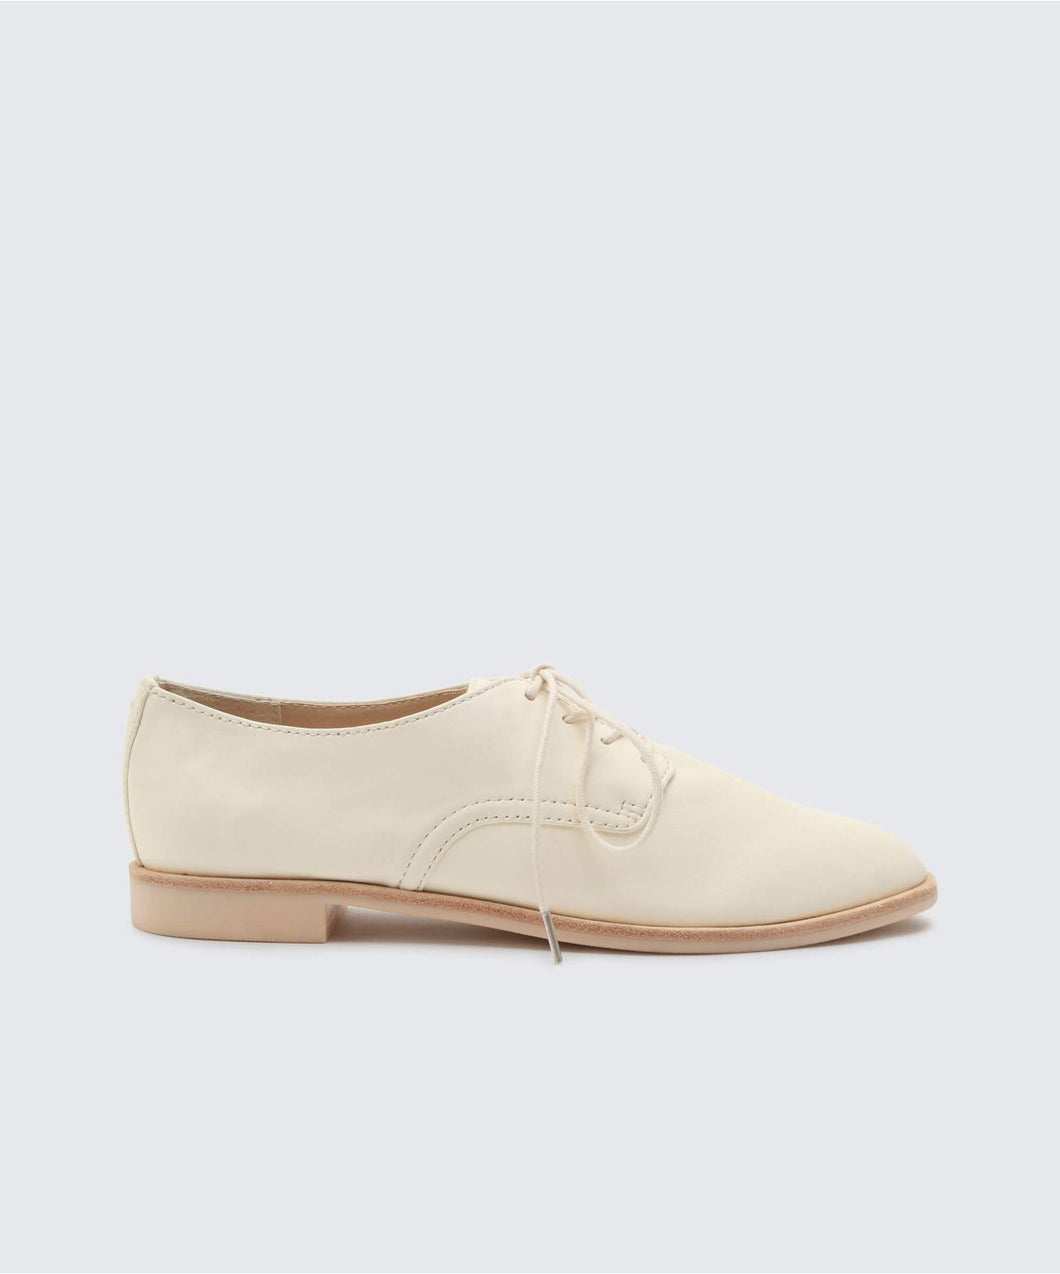 KYLE FLATS IN OFF WHITE -   Dolce Vita